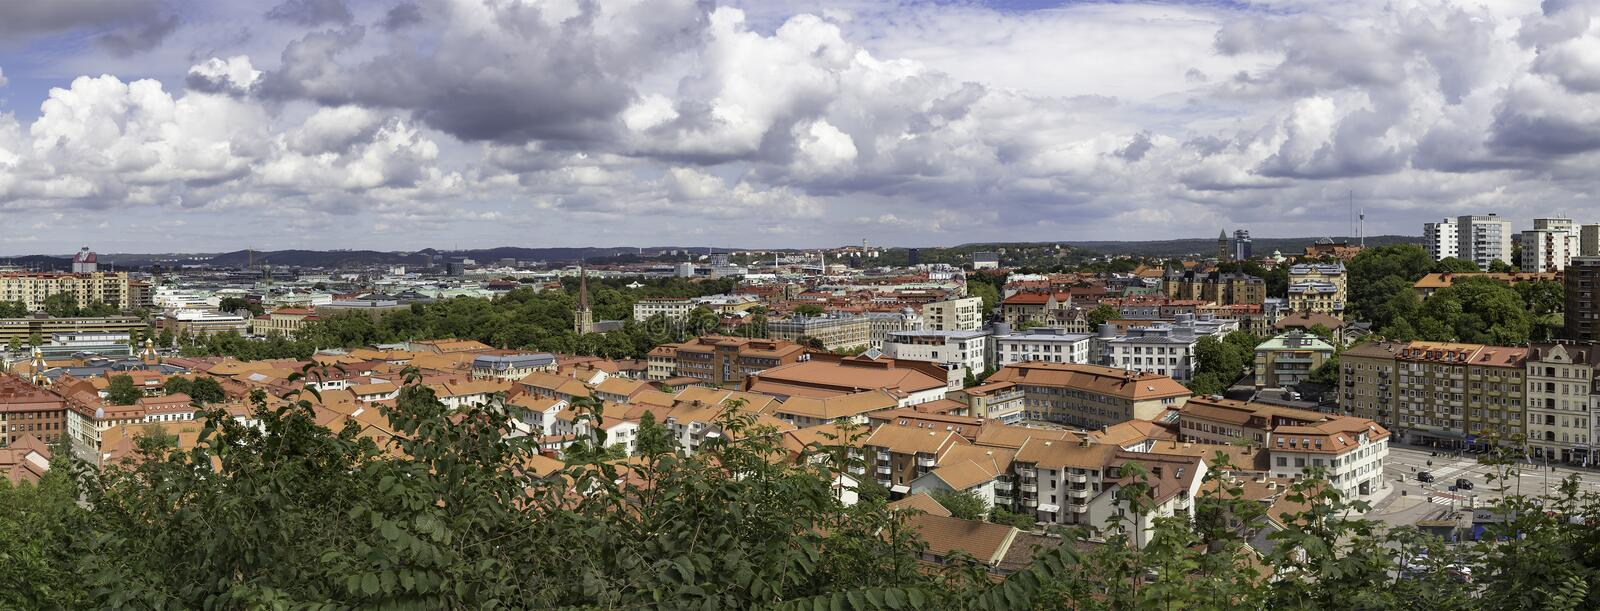 City panorama with view over Goteborg Sweden. Beautiful panoramic view over the city of Goteborg Sweden on a summer day with a cloudy sky stock image